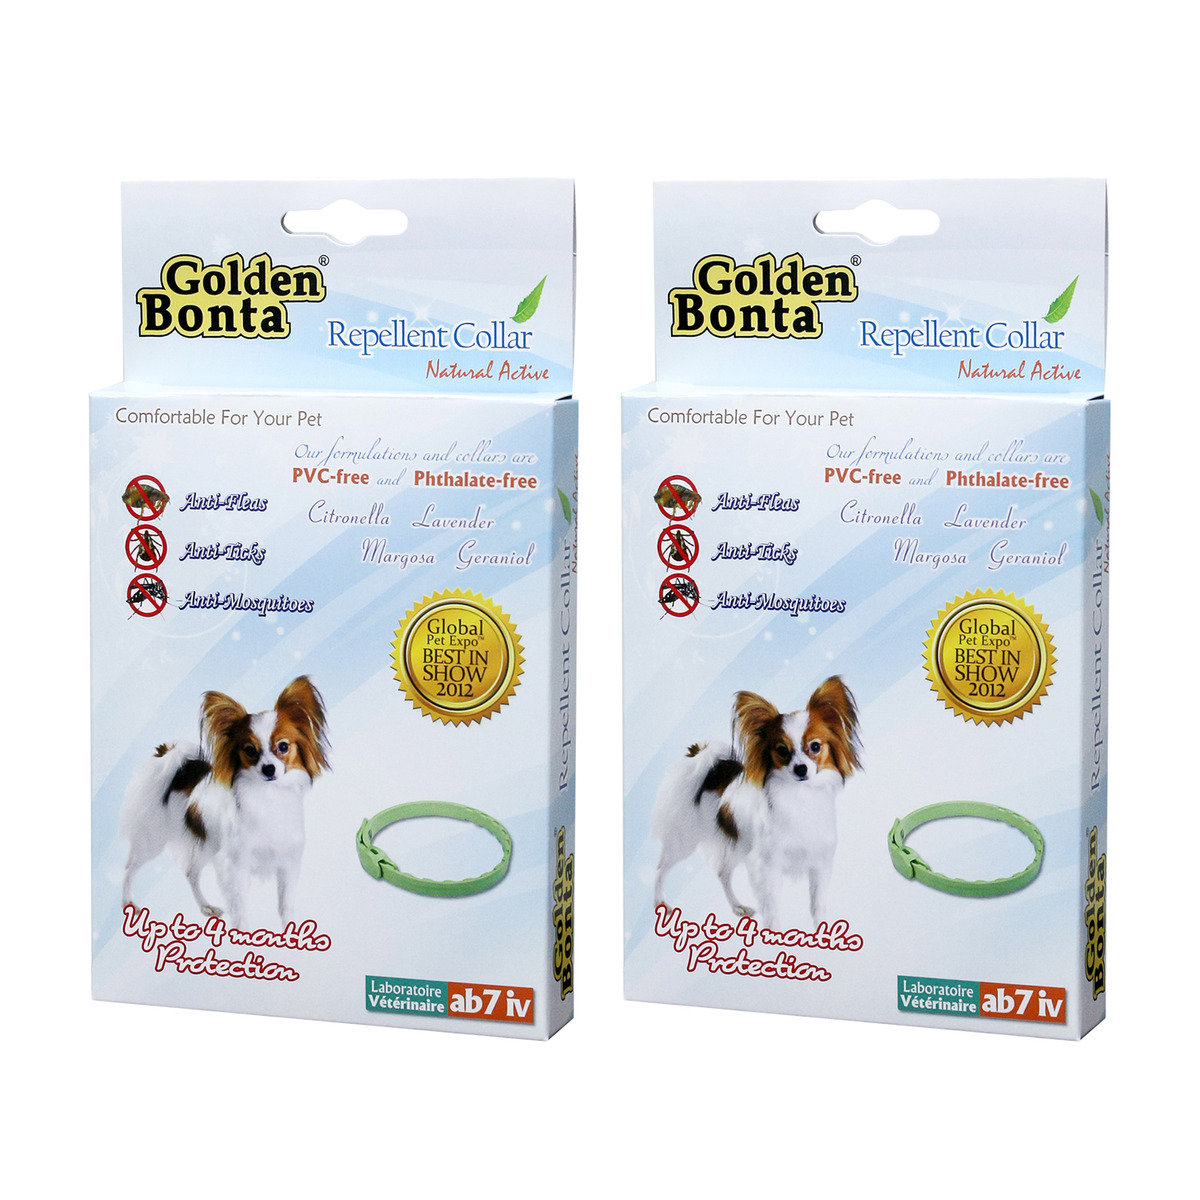 Repellent Collar for Small dogs x 2 (GBR-02-2)